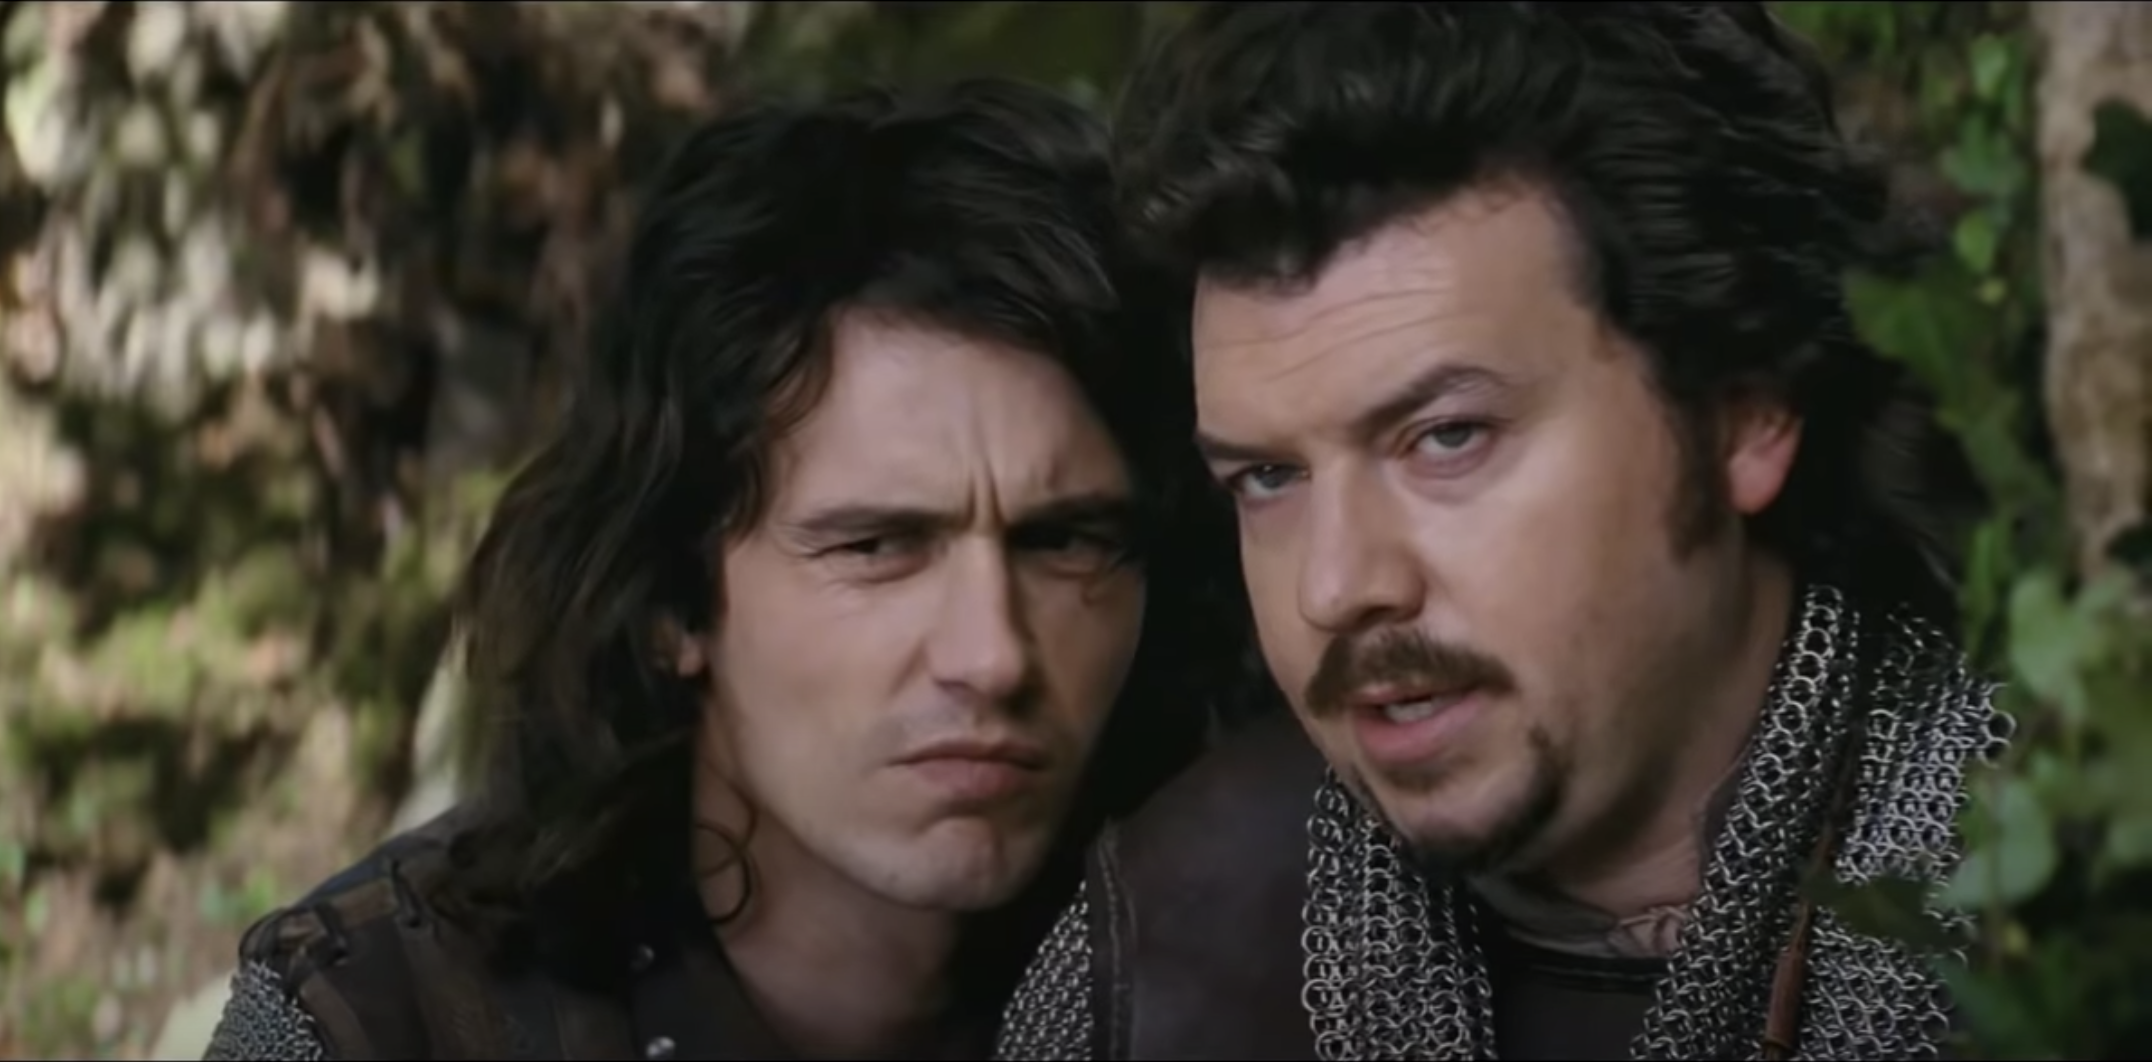 James Franco and Danny McBride as two medieval princes in Your Highness